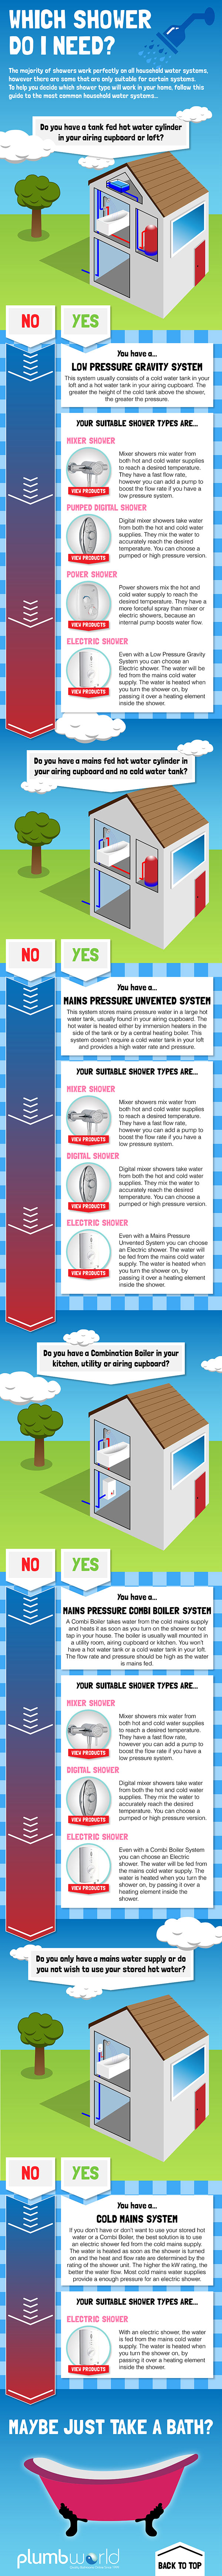 Shower Type Infographic